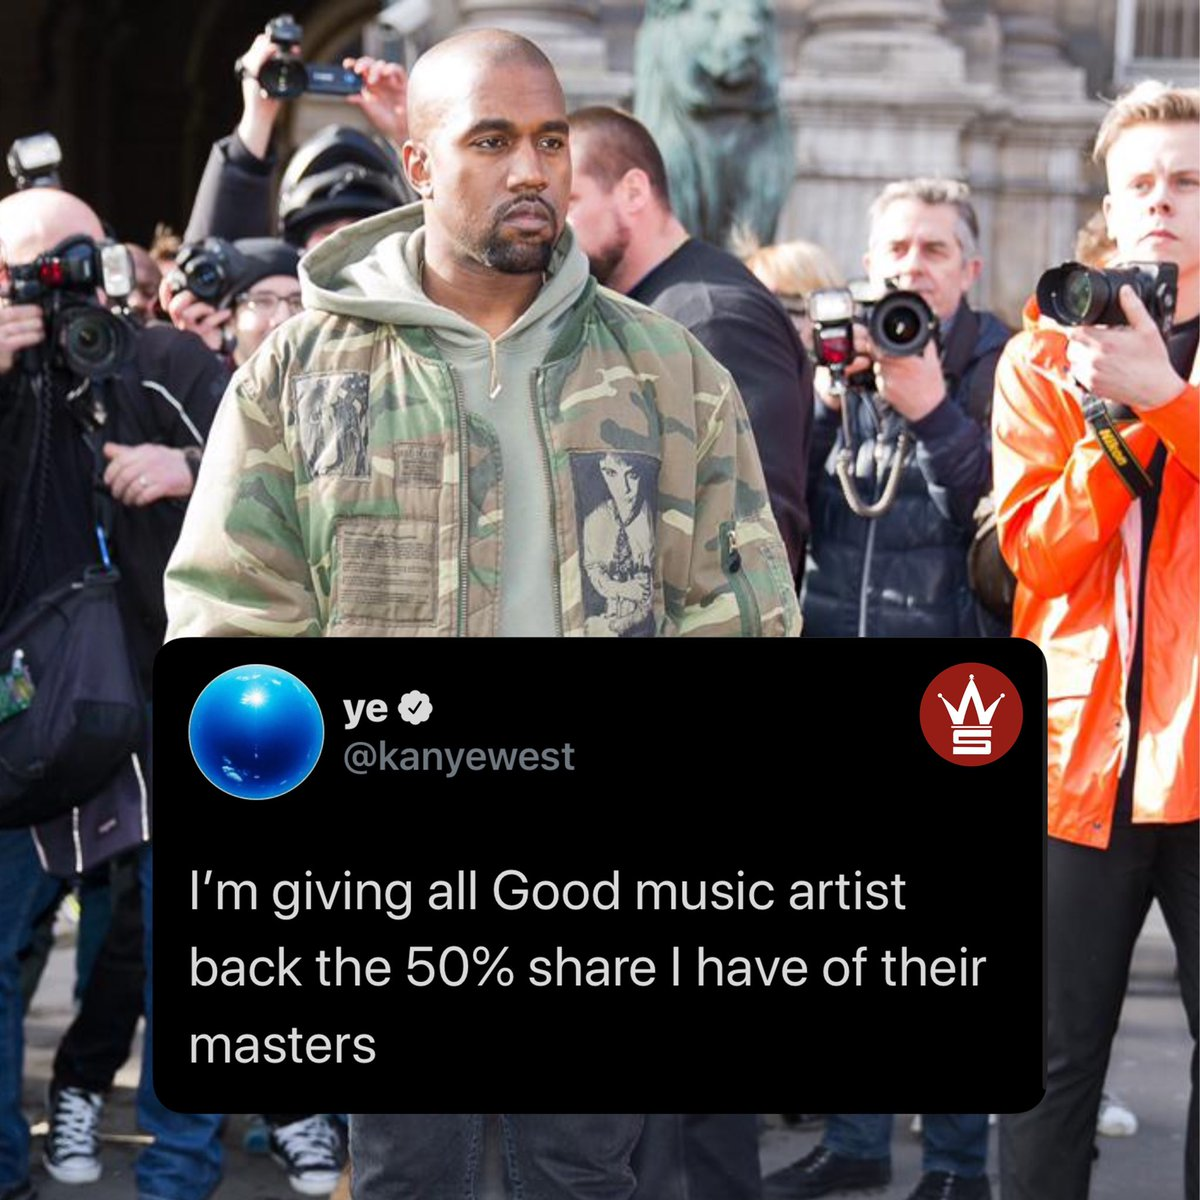 """#KanyeWest is giving back artists who signed with """"GOOD"""" music %50 of their shares back...thoughts?! 👀💯@kanyewest https://t.co/r4A42Yf4Mb"""